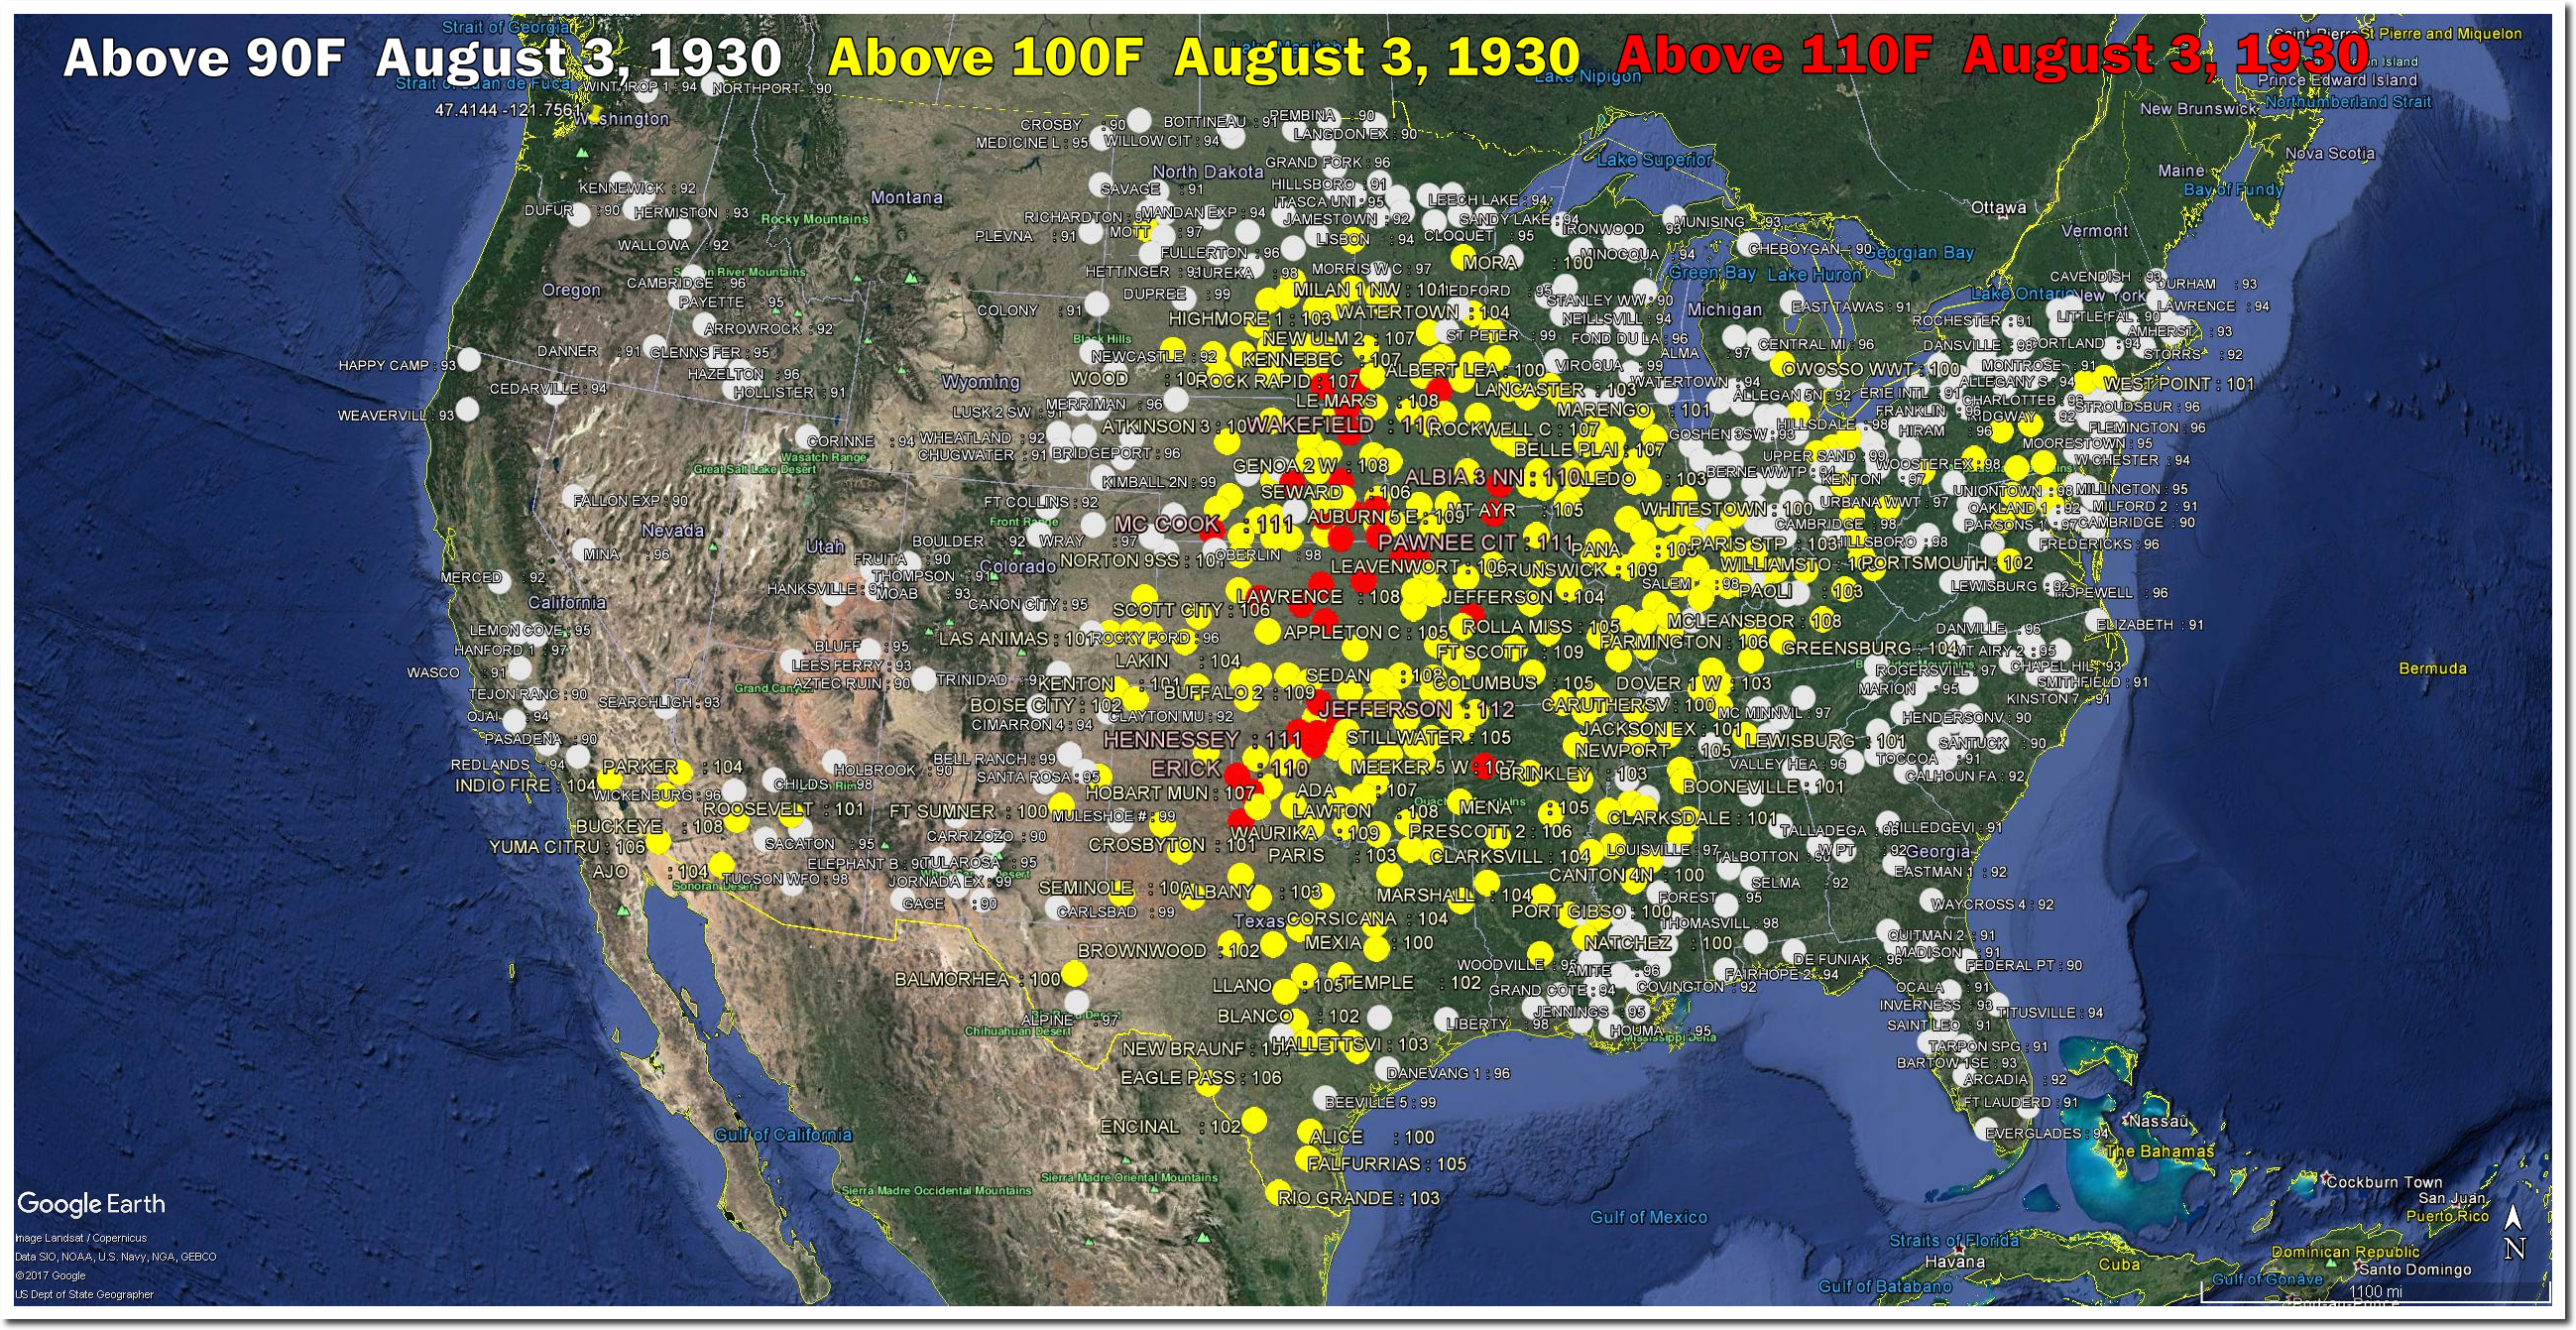 Plummeting August 3 Temperatures In The US The Deplorable Climate